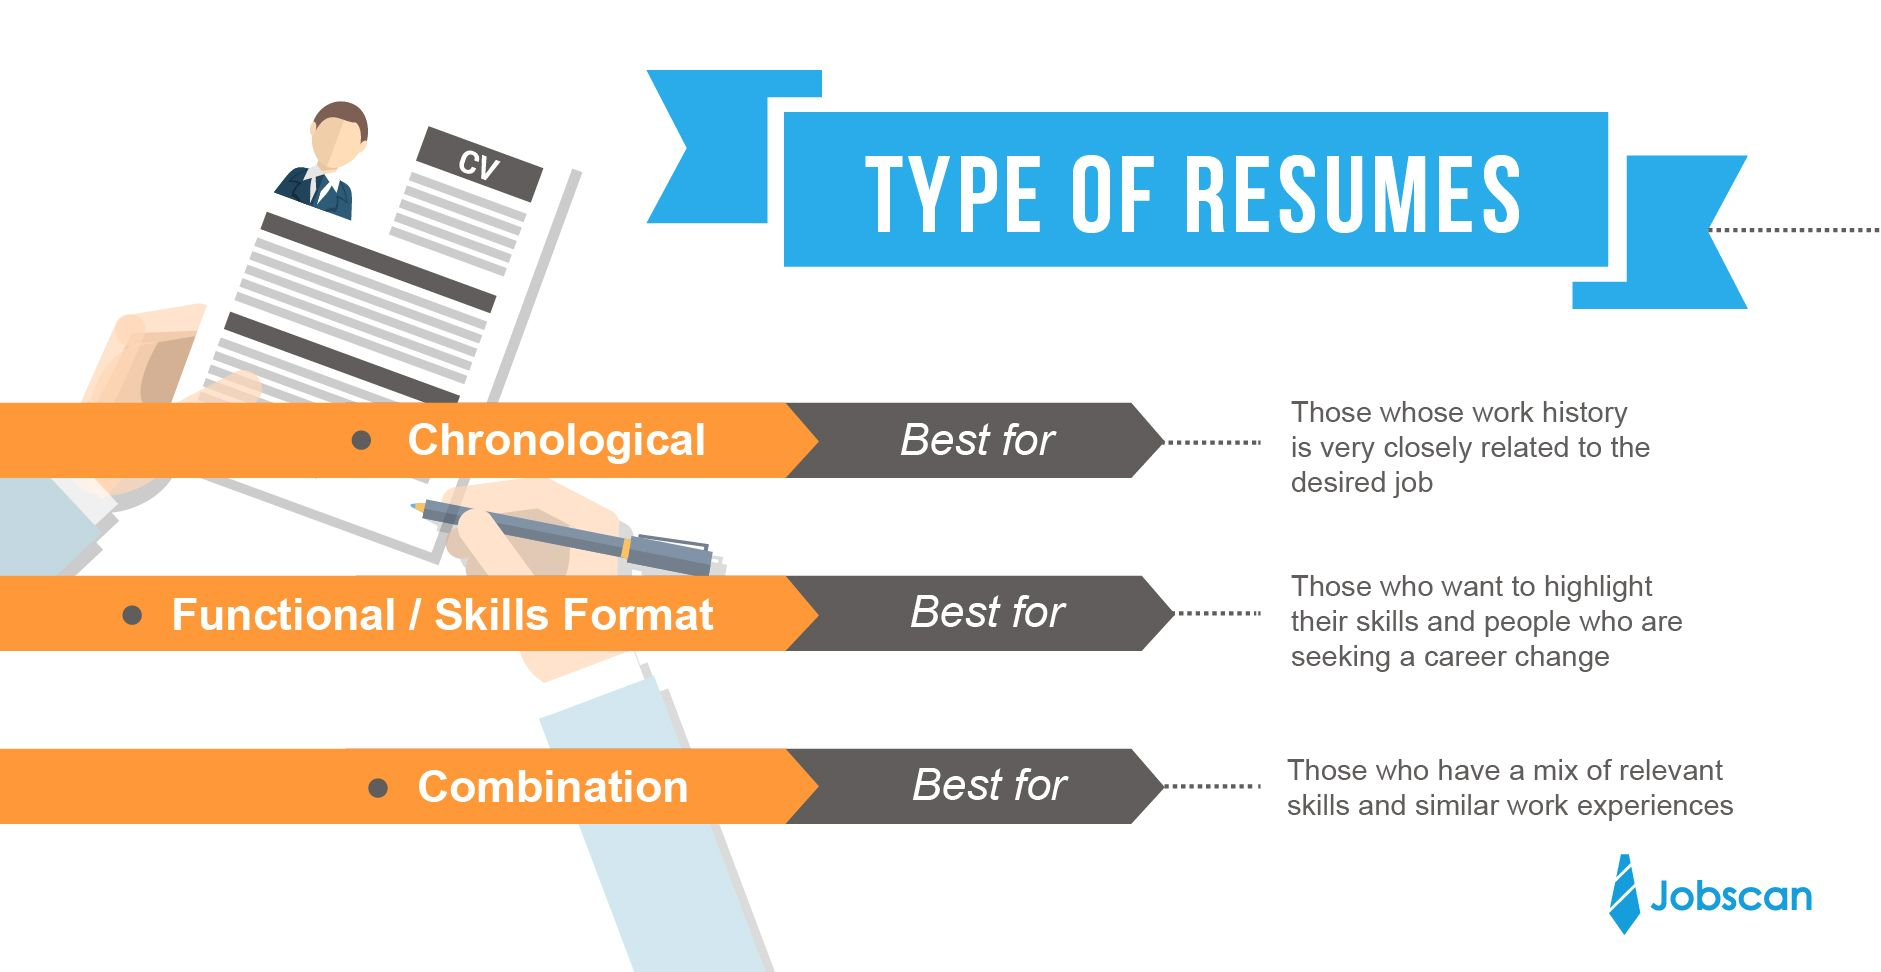 Resume Tips To Help You Past Computer Screeners Types Of